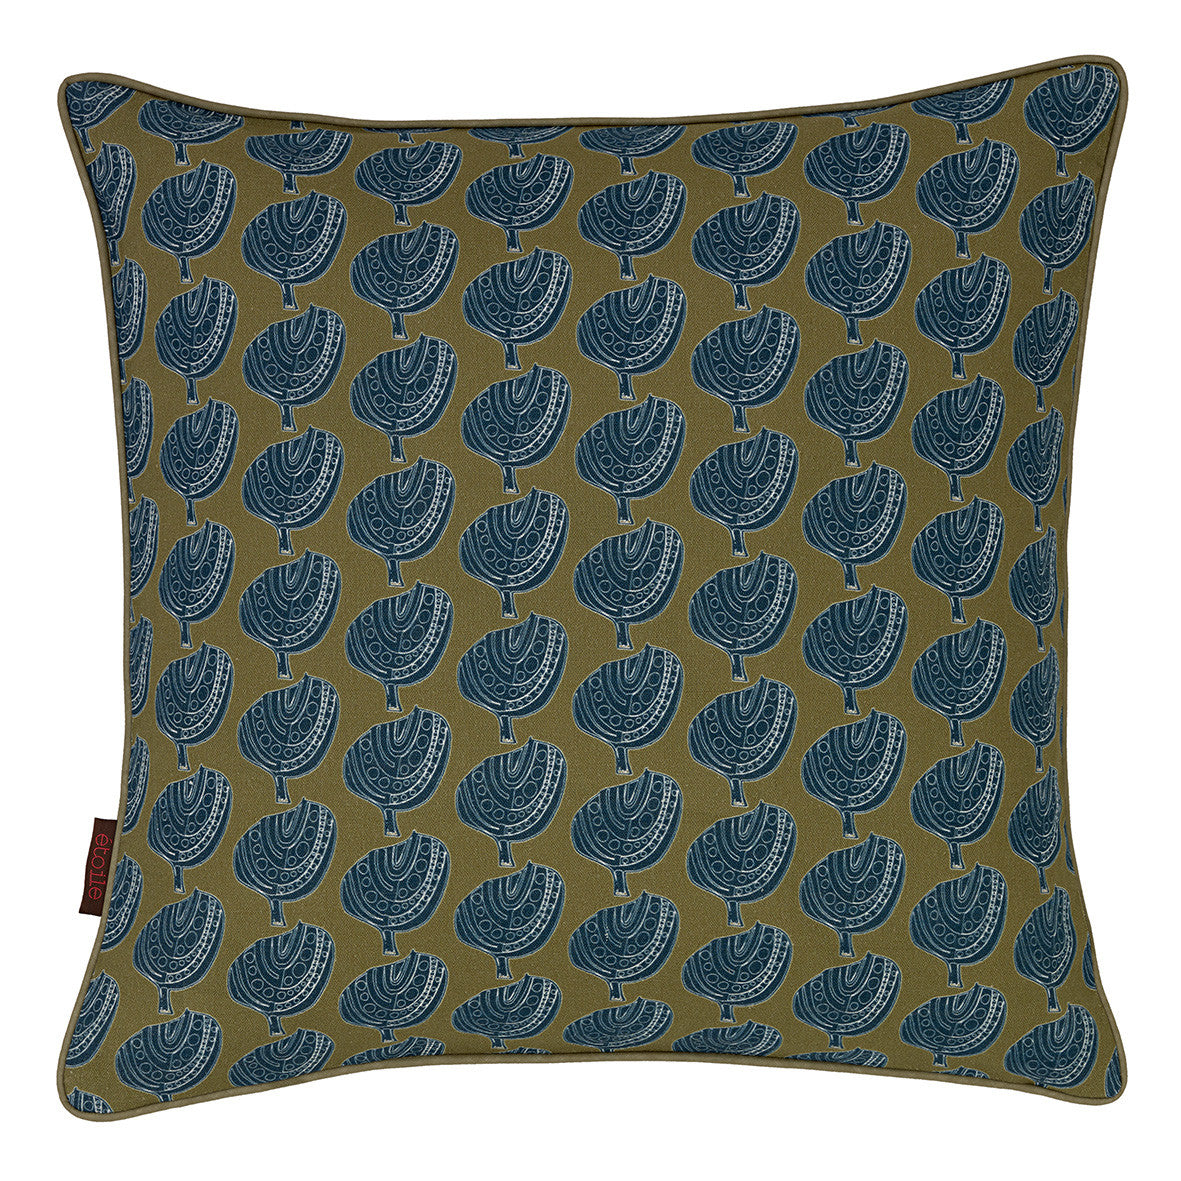 Graphic Apple Tree Pattern Printed Linen Union Decorative Throw Pillow in Antique Moss & Dark Petrol Blue 45x45cm